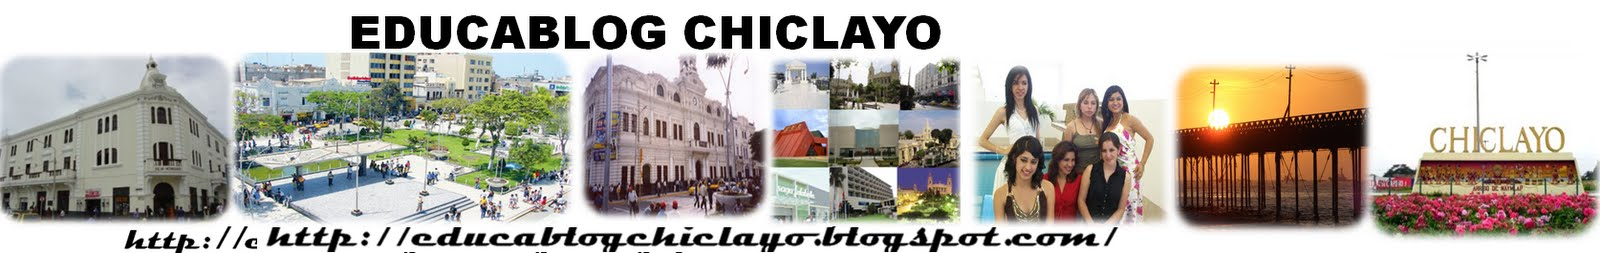 EDUCABLOG -CHICLAYO